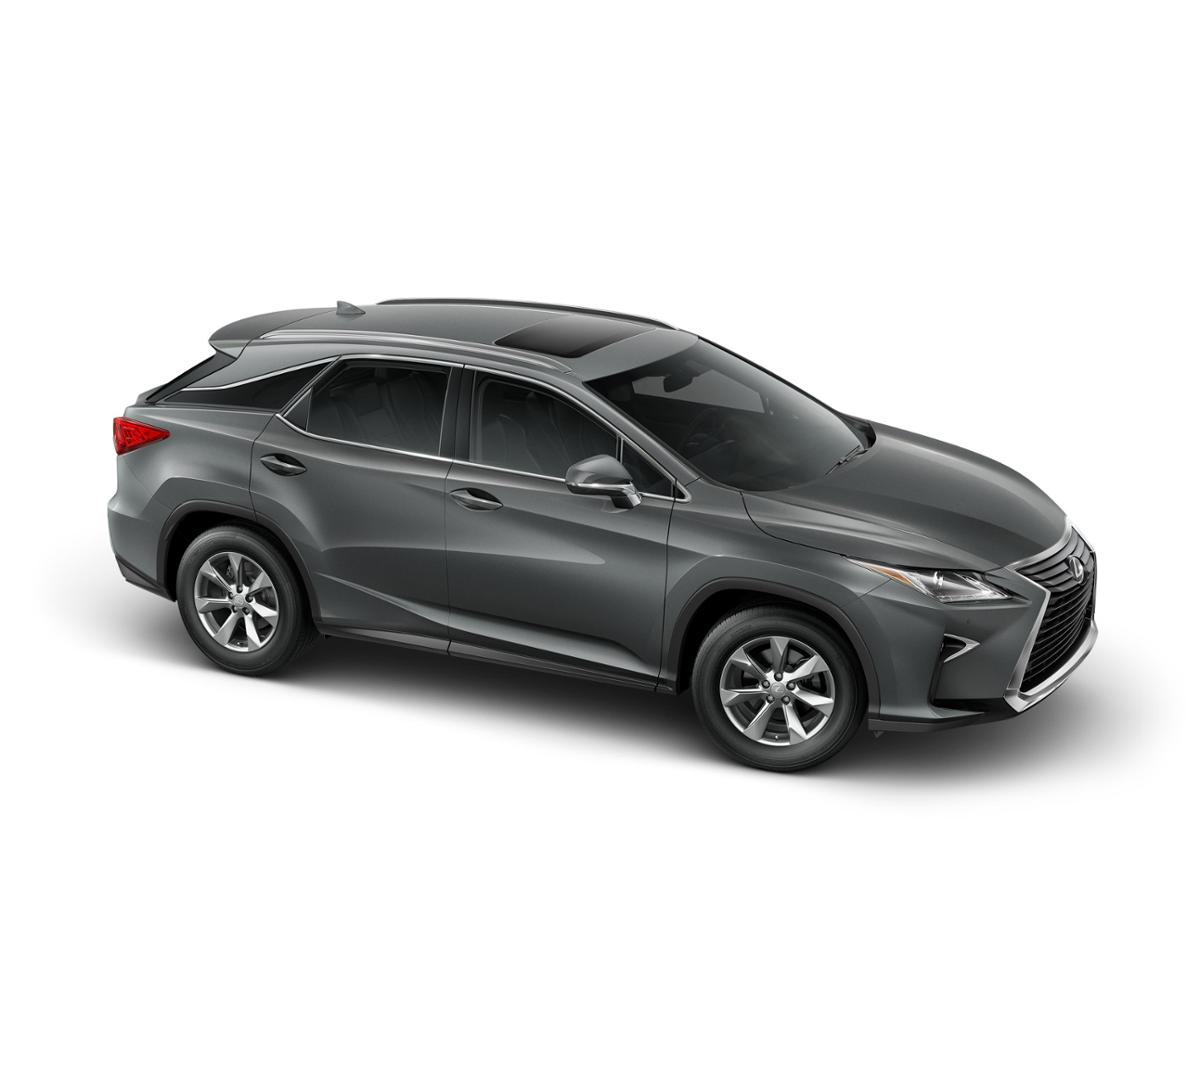 Lexus Rx 350 Lease: 2017 Lexus RX 350 For Sale In San Antonio